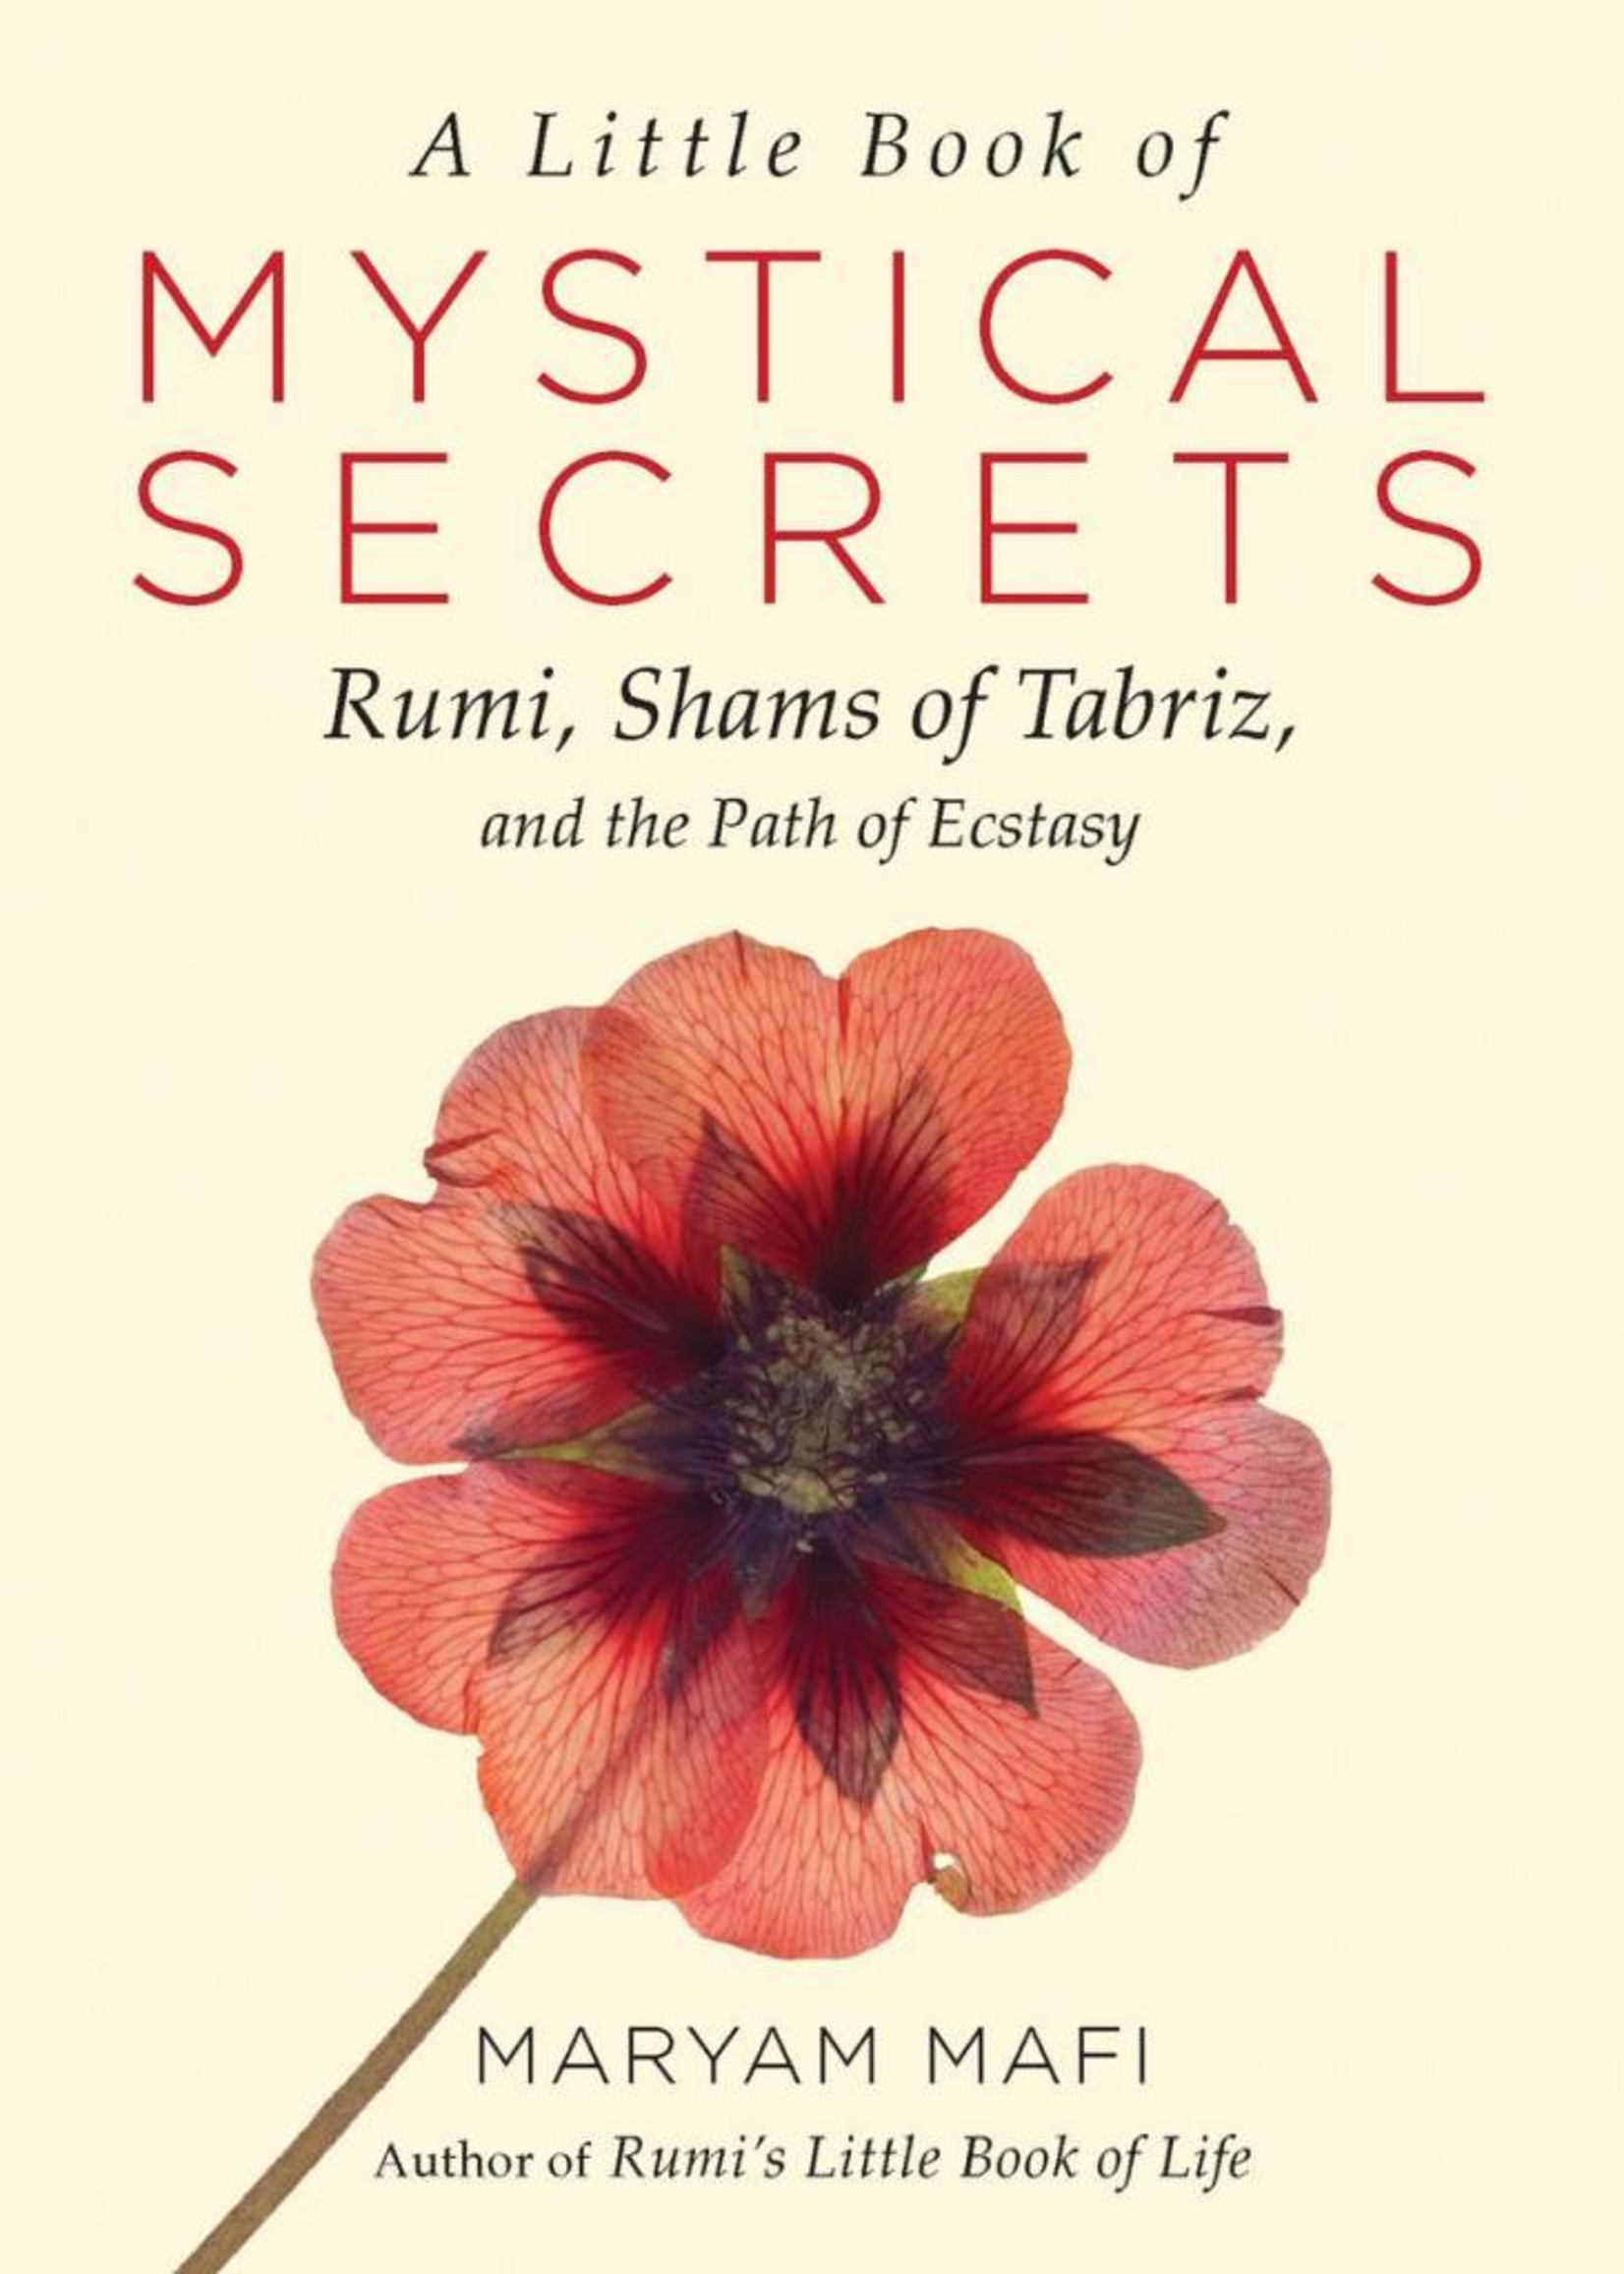 A Little Book of Mystical Secrets   Rumi, Shams of Tabriz, and the Path of Ecstasy